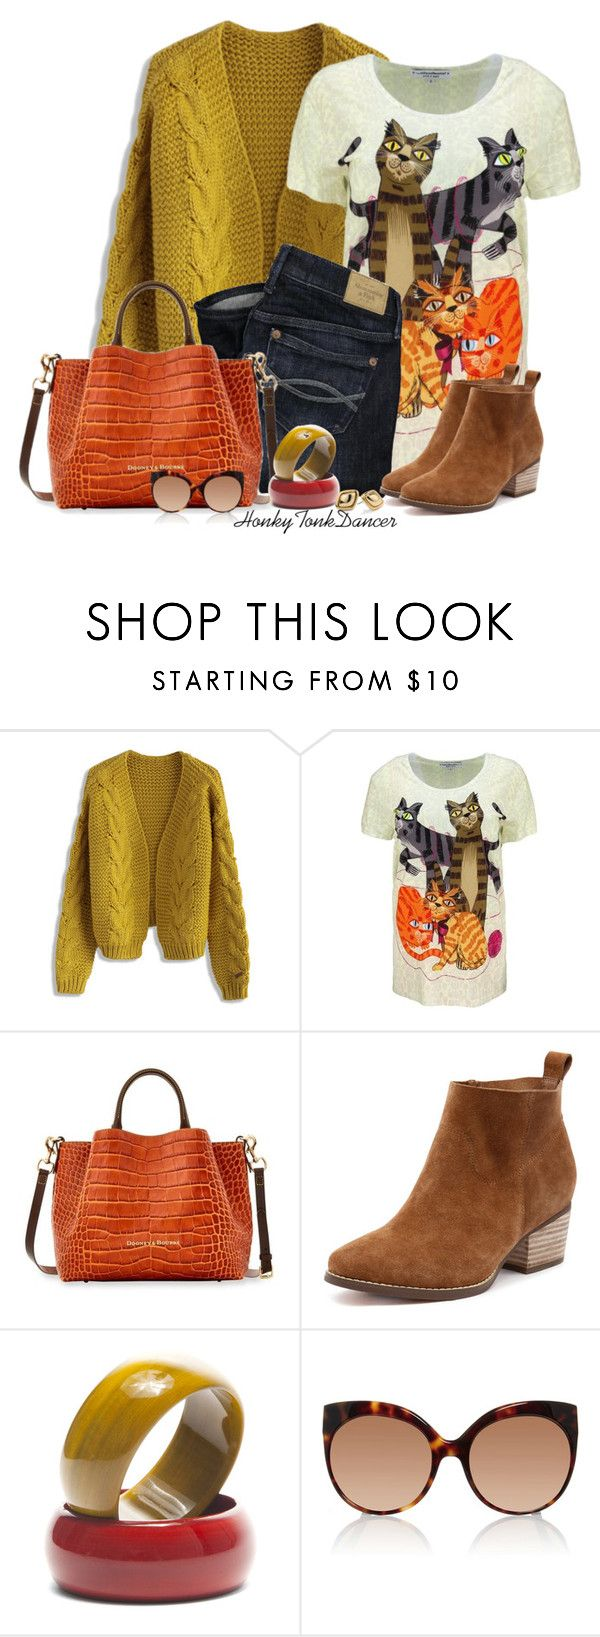 """Cat Print Tshirt"" by honkytonkdancer ❤ liked on Polyvore featuring Chicwish, Abercrombie & Fitch, Dooney & Bourke, Linda Farrow, Chico's, casualoutfit, FallColors and catprint"